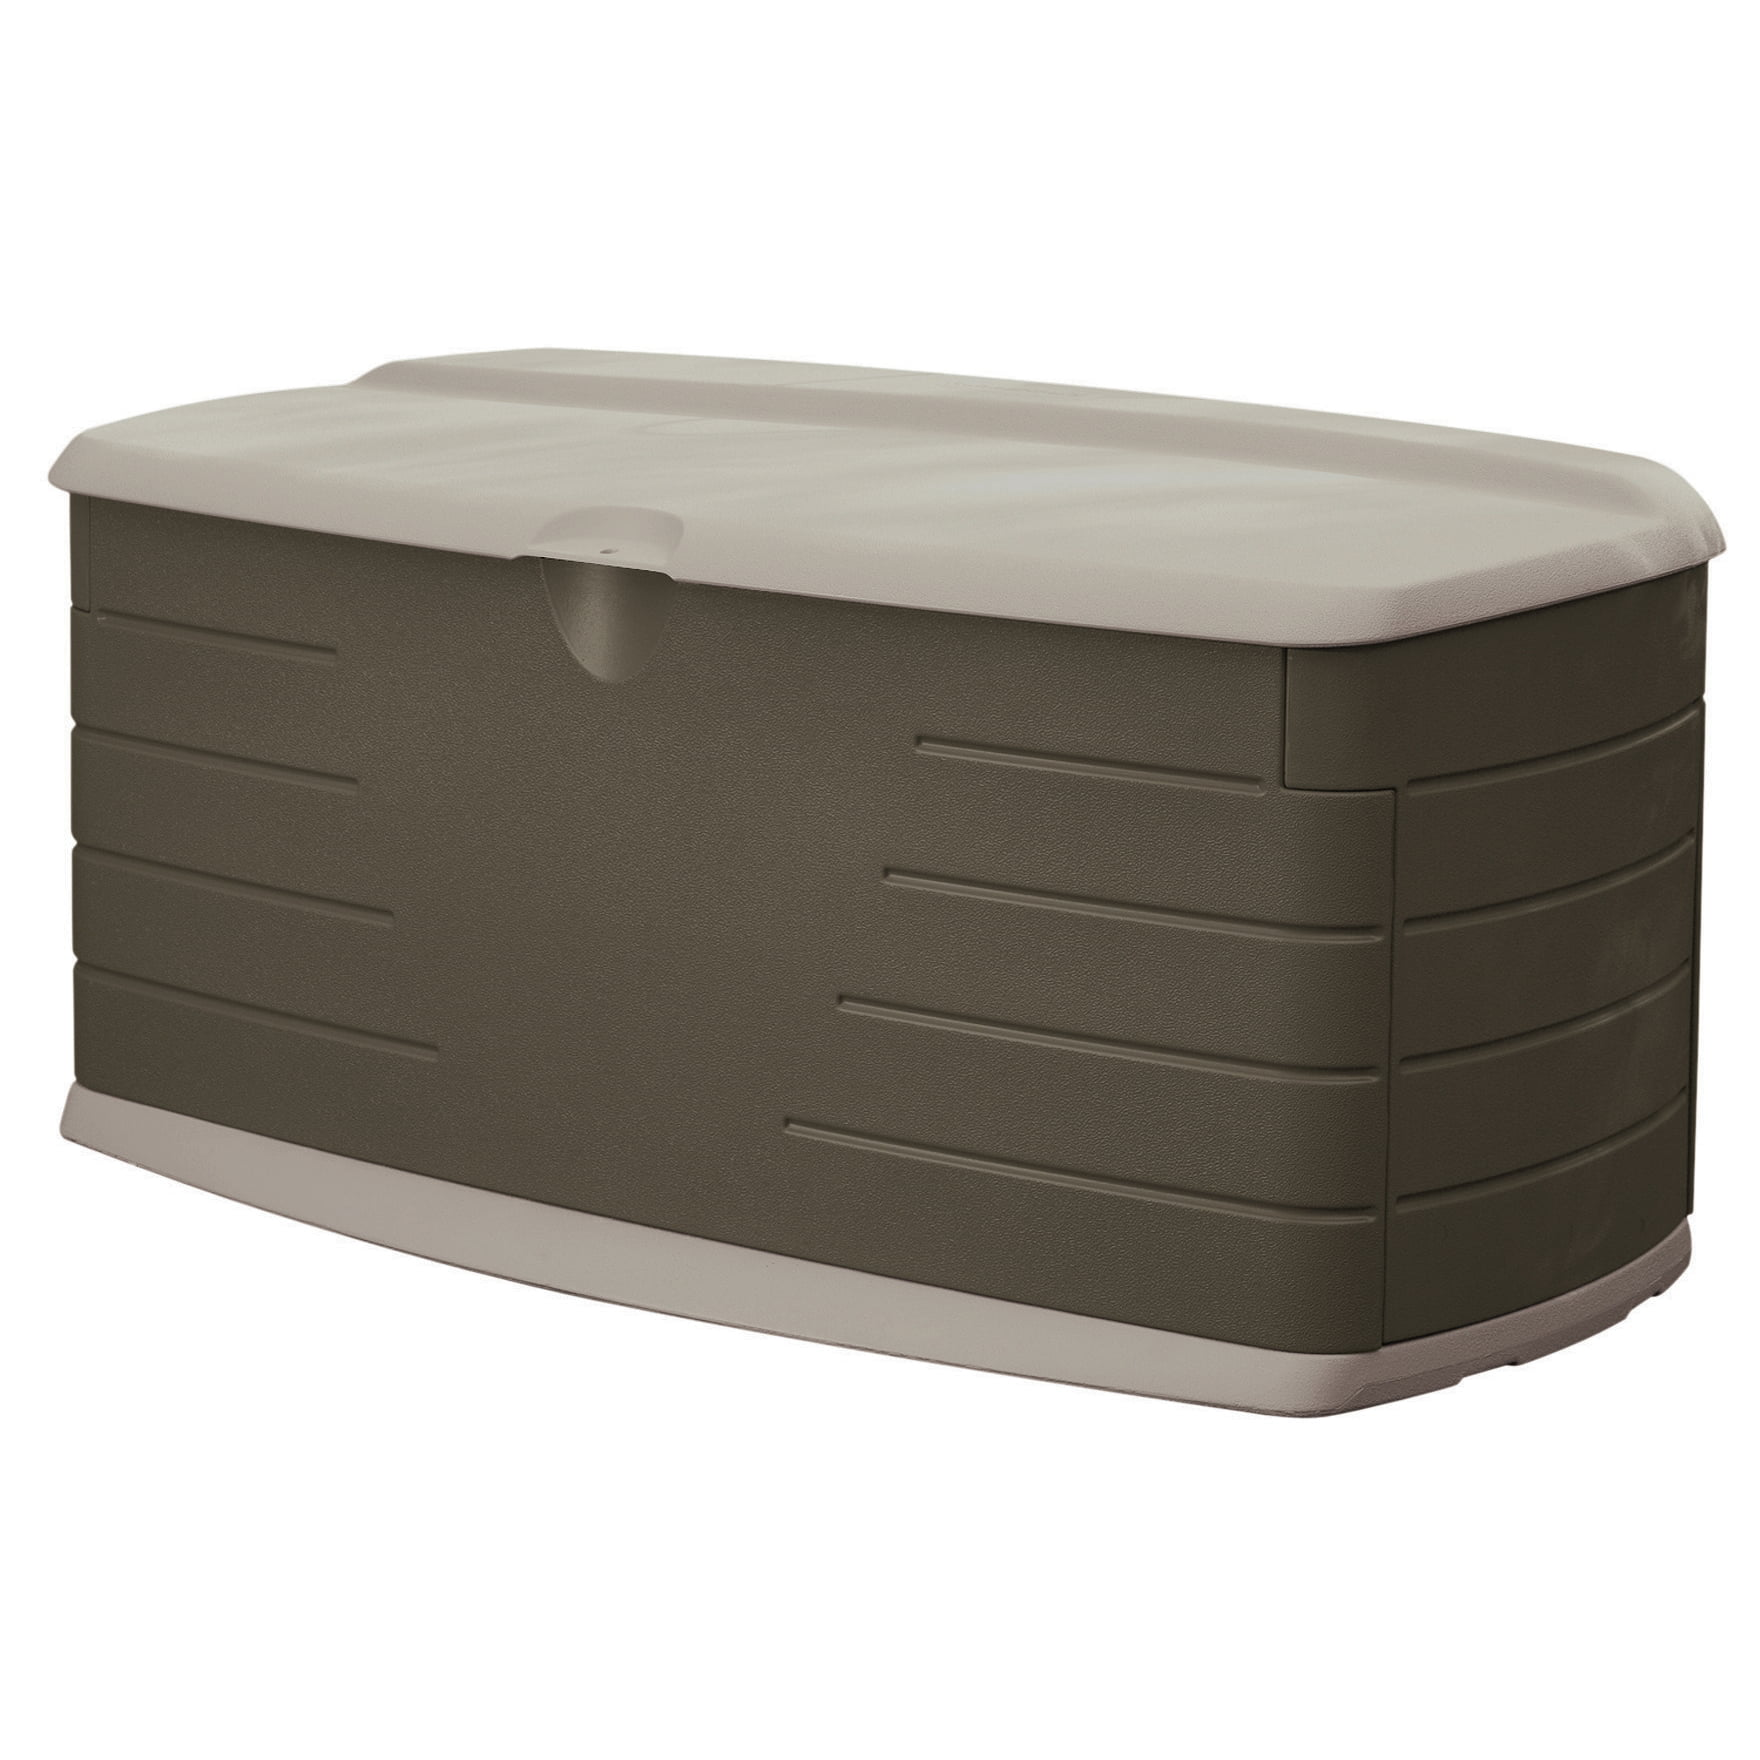 Rubbermaid Large Deck Box with Seat, 90 Gallon Capacity by Rubbermaid Home Products